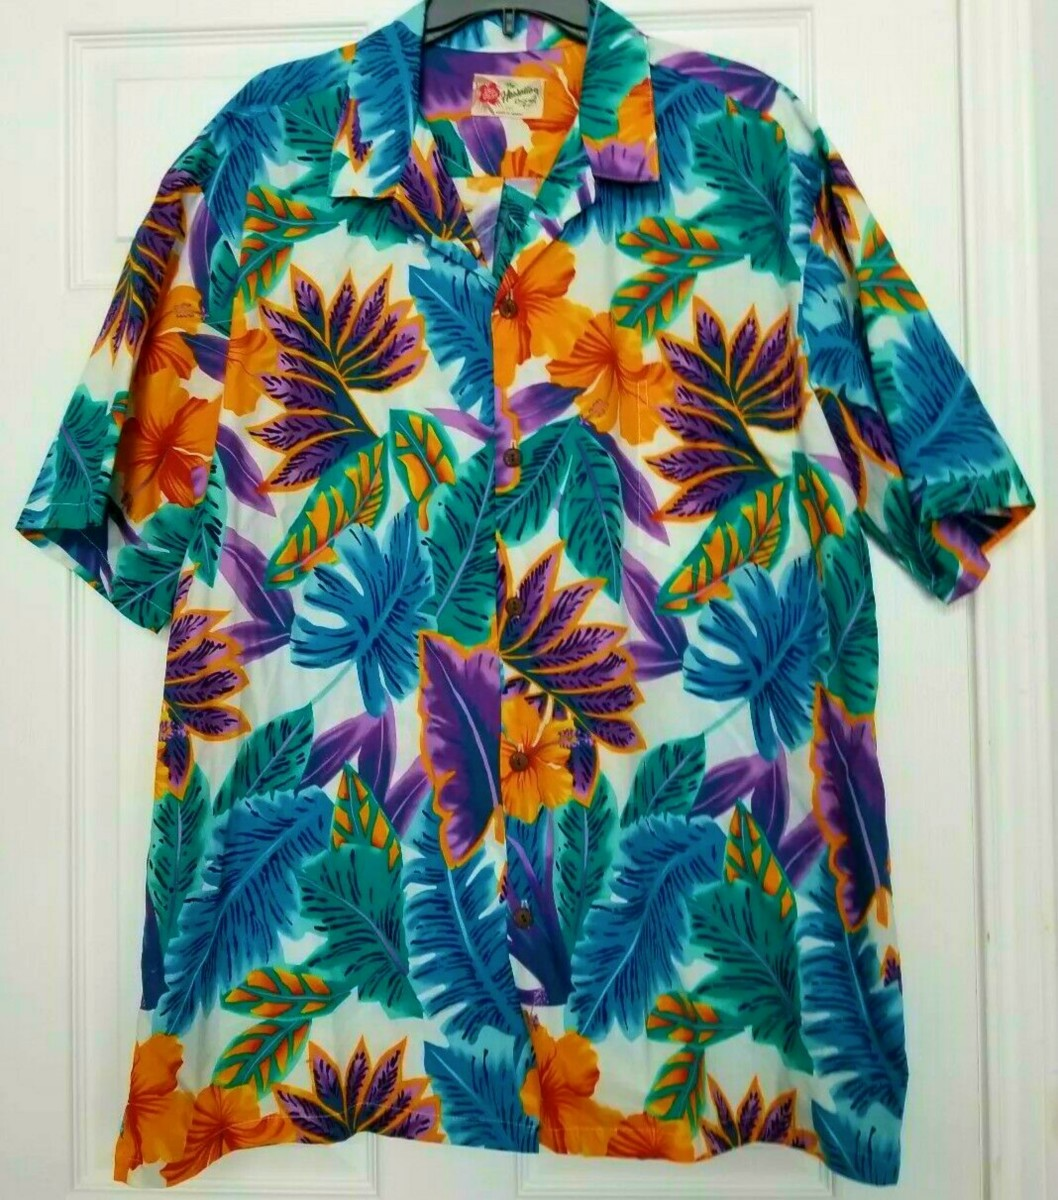 Hilo Hattie mens Hawaiian shirt size 2XL. 100% cotton, and completely made in Hawaii.